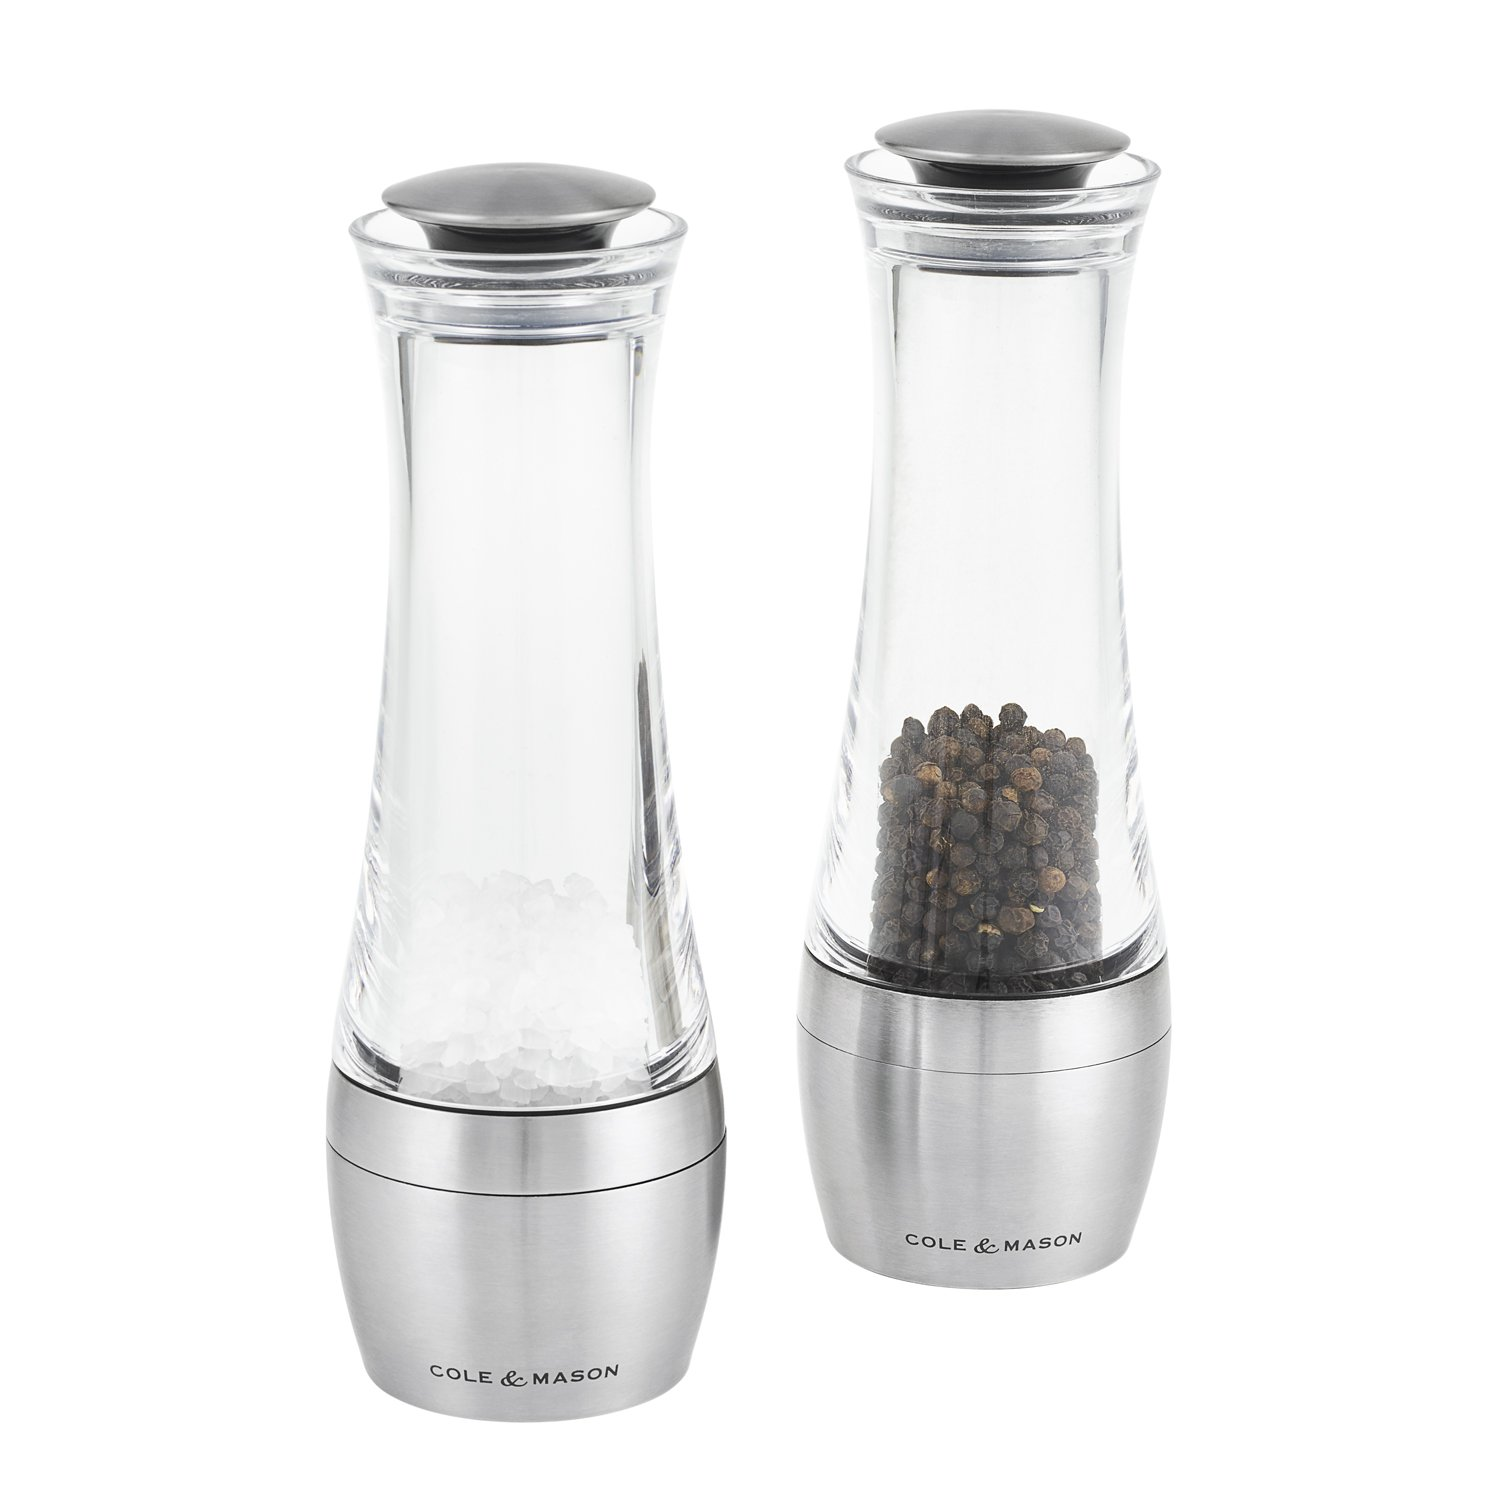 COLE & MASON Amesbury Salt & Pepper Grinder Set - Gourmet Precision Stainless Steel Mills with Adjustable Grinder Cole and Mason H308798PU